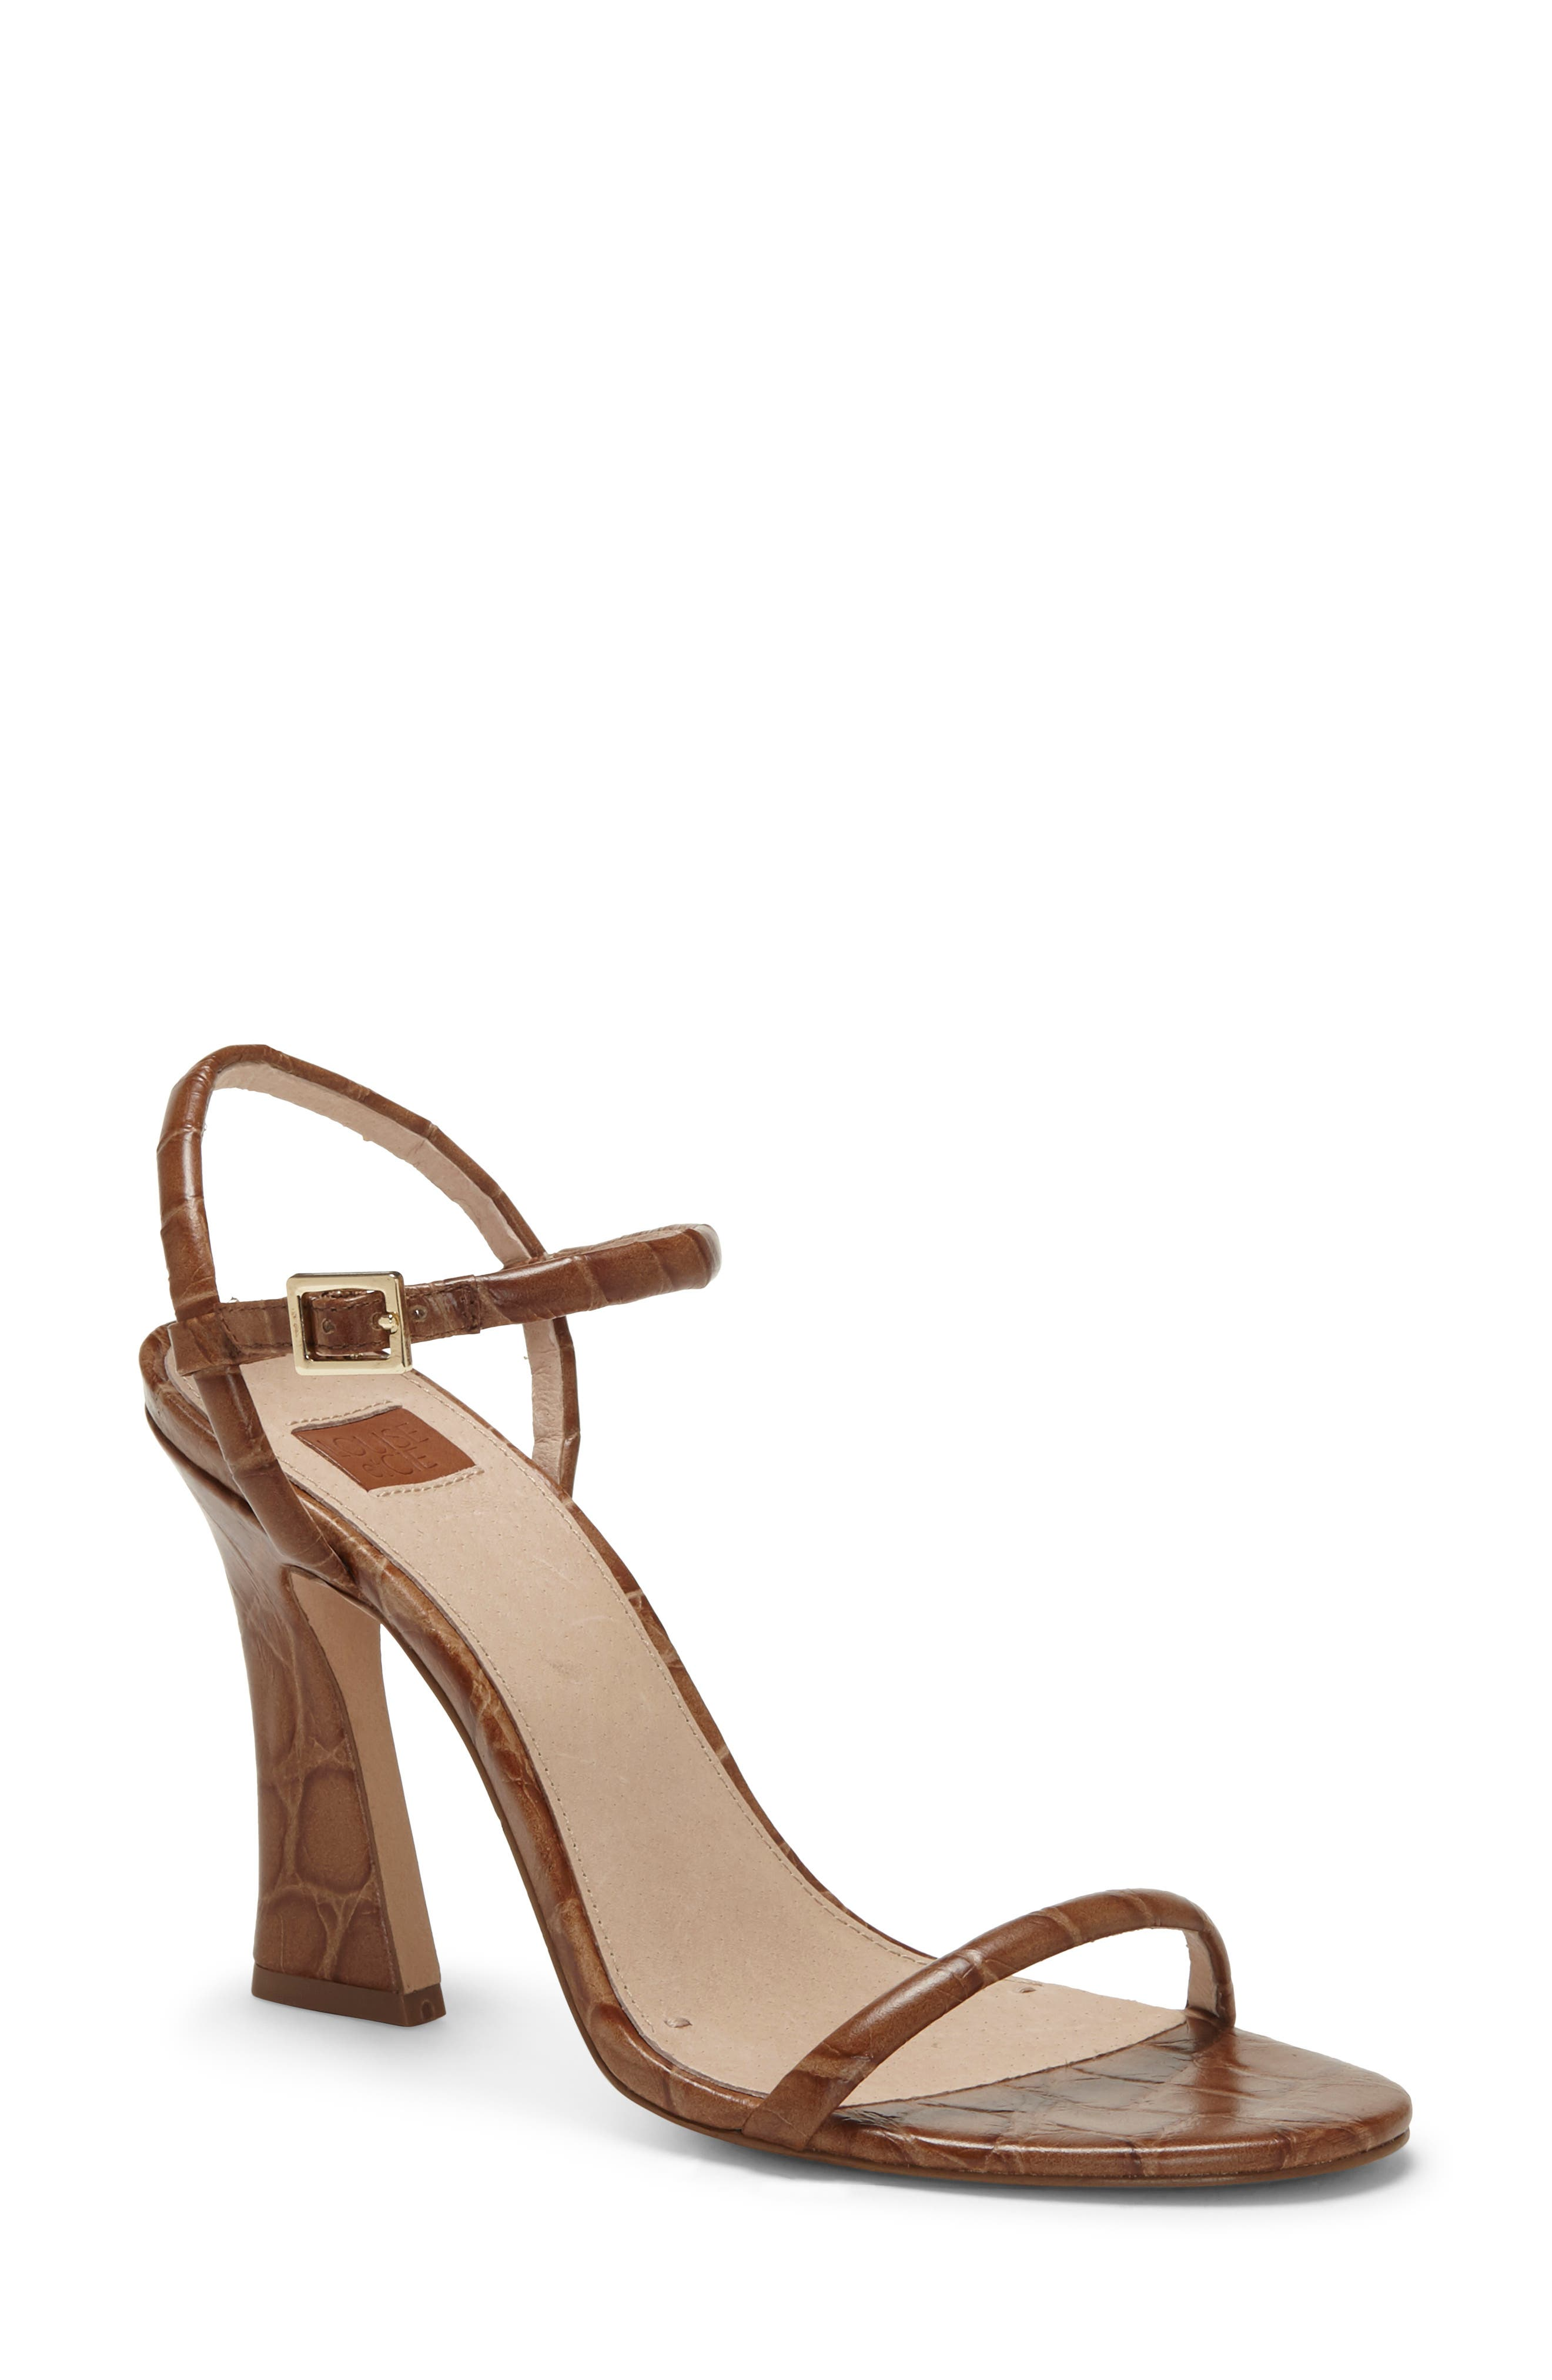 A slightly flared heel adds a hint of retro attitude to a contemporary-chic sandal topped with slim, minimalist straps. Style Name: Louise Et Cie Isandro Ankle Strap Sandal (Women). Style Number: 6017213. Available in stores.